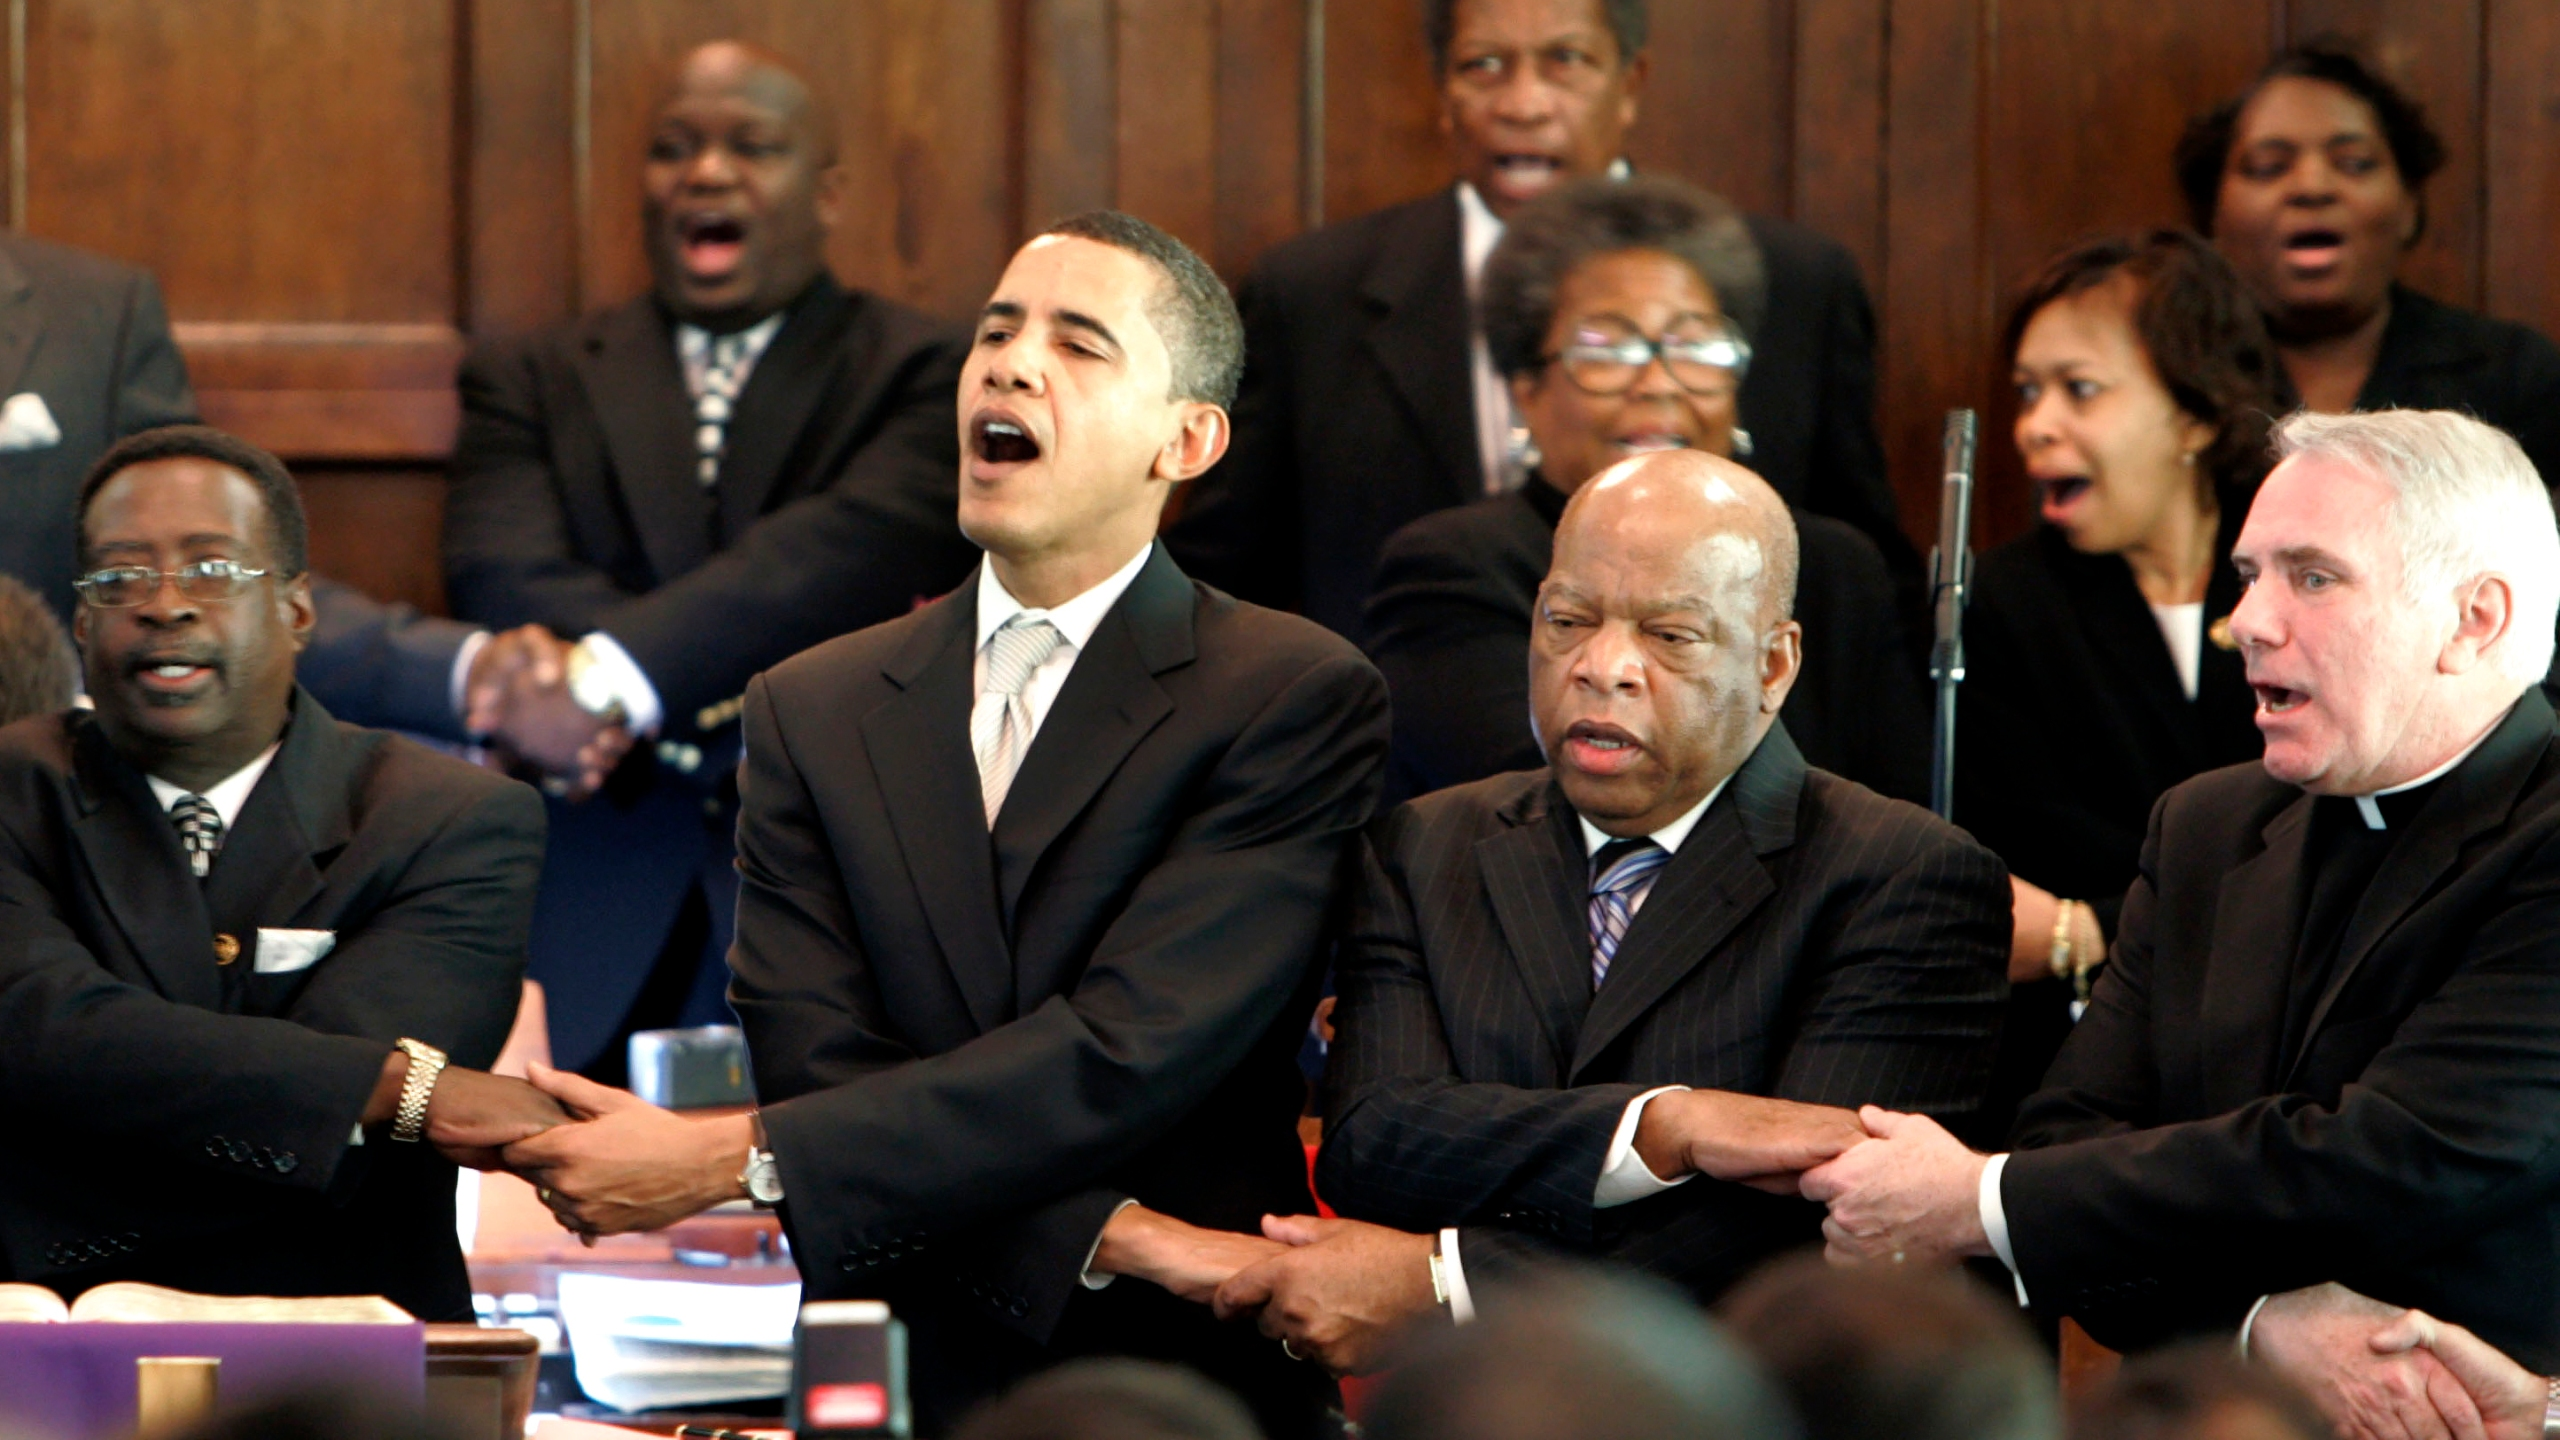 Barack Obama, John Lewis, James Jackson, Clete Kiley